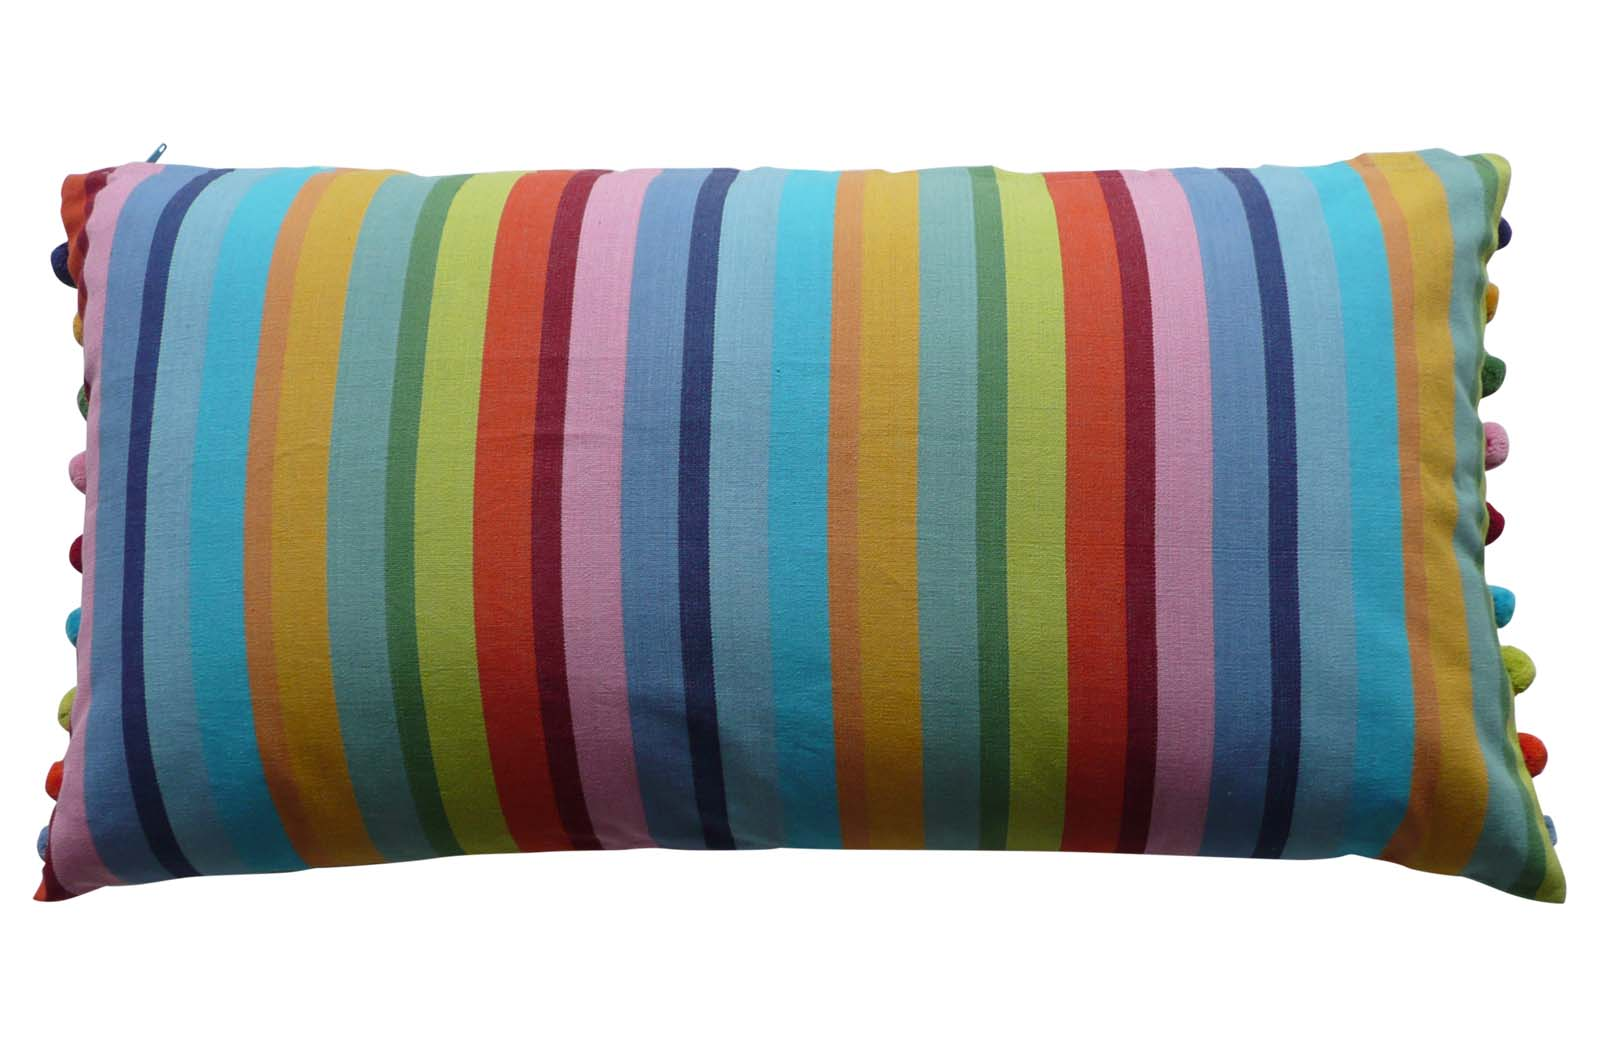 Rainbow Striped Oblong Cushions with Bobble Fringe